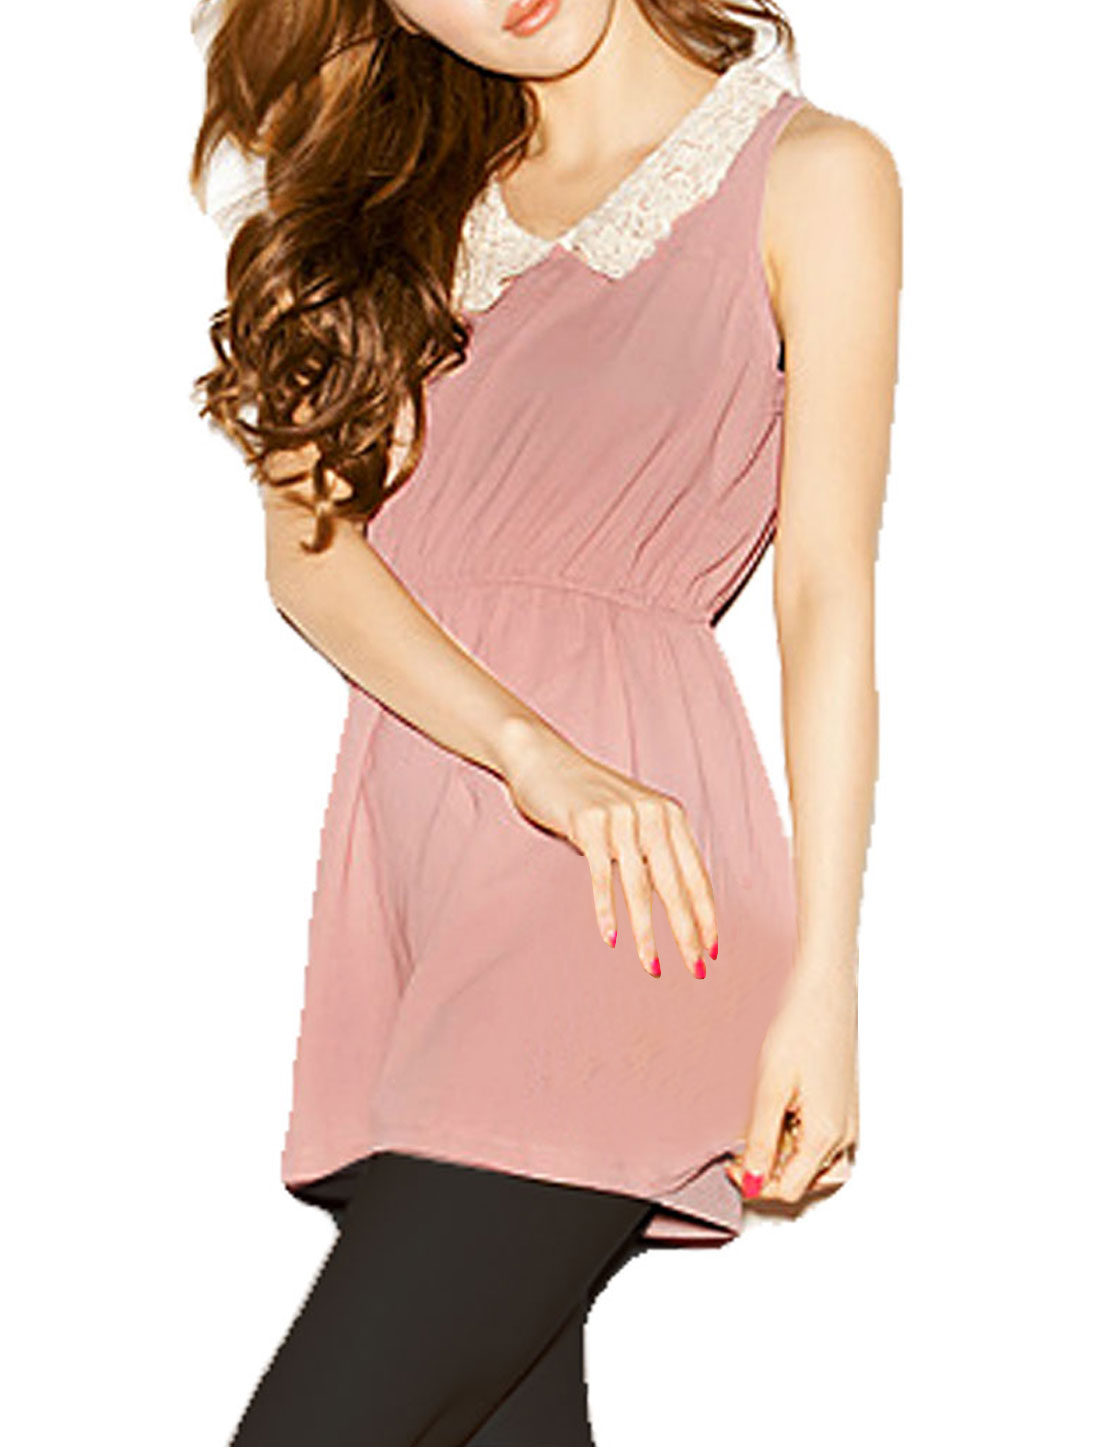 Women White Lace Peter Pan Collar Sleeveless Pink Tunic Shirt XS